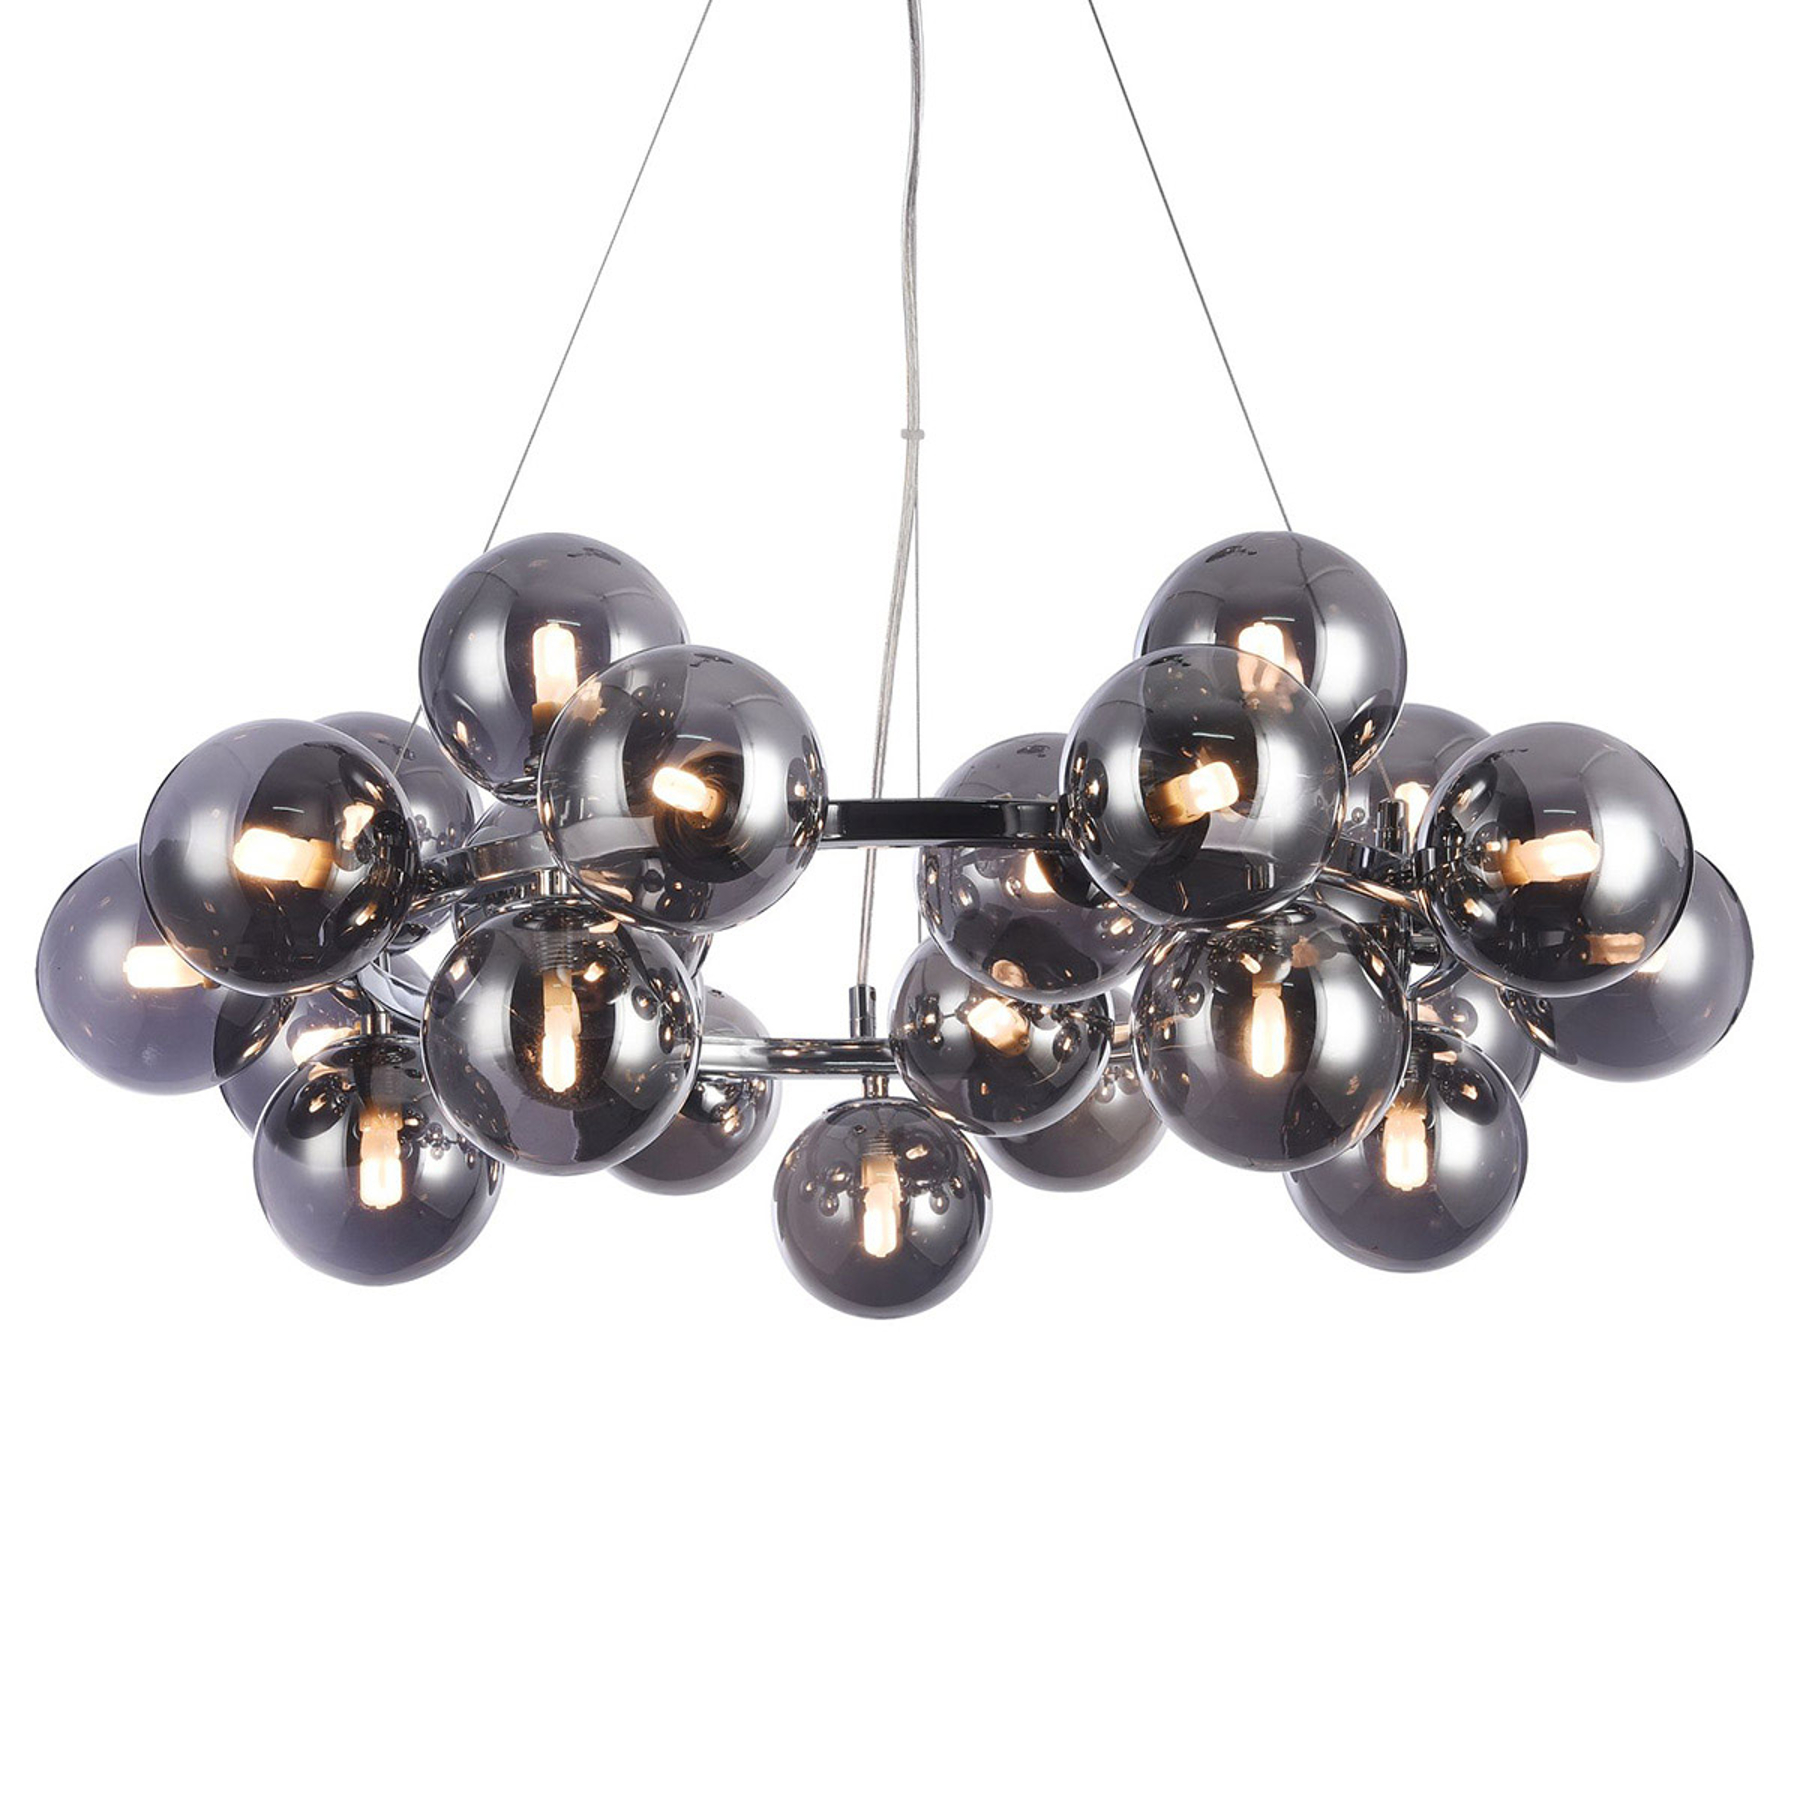 Ronde hanglamp Dallas, chroom